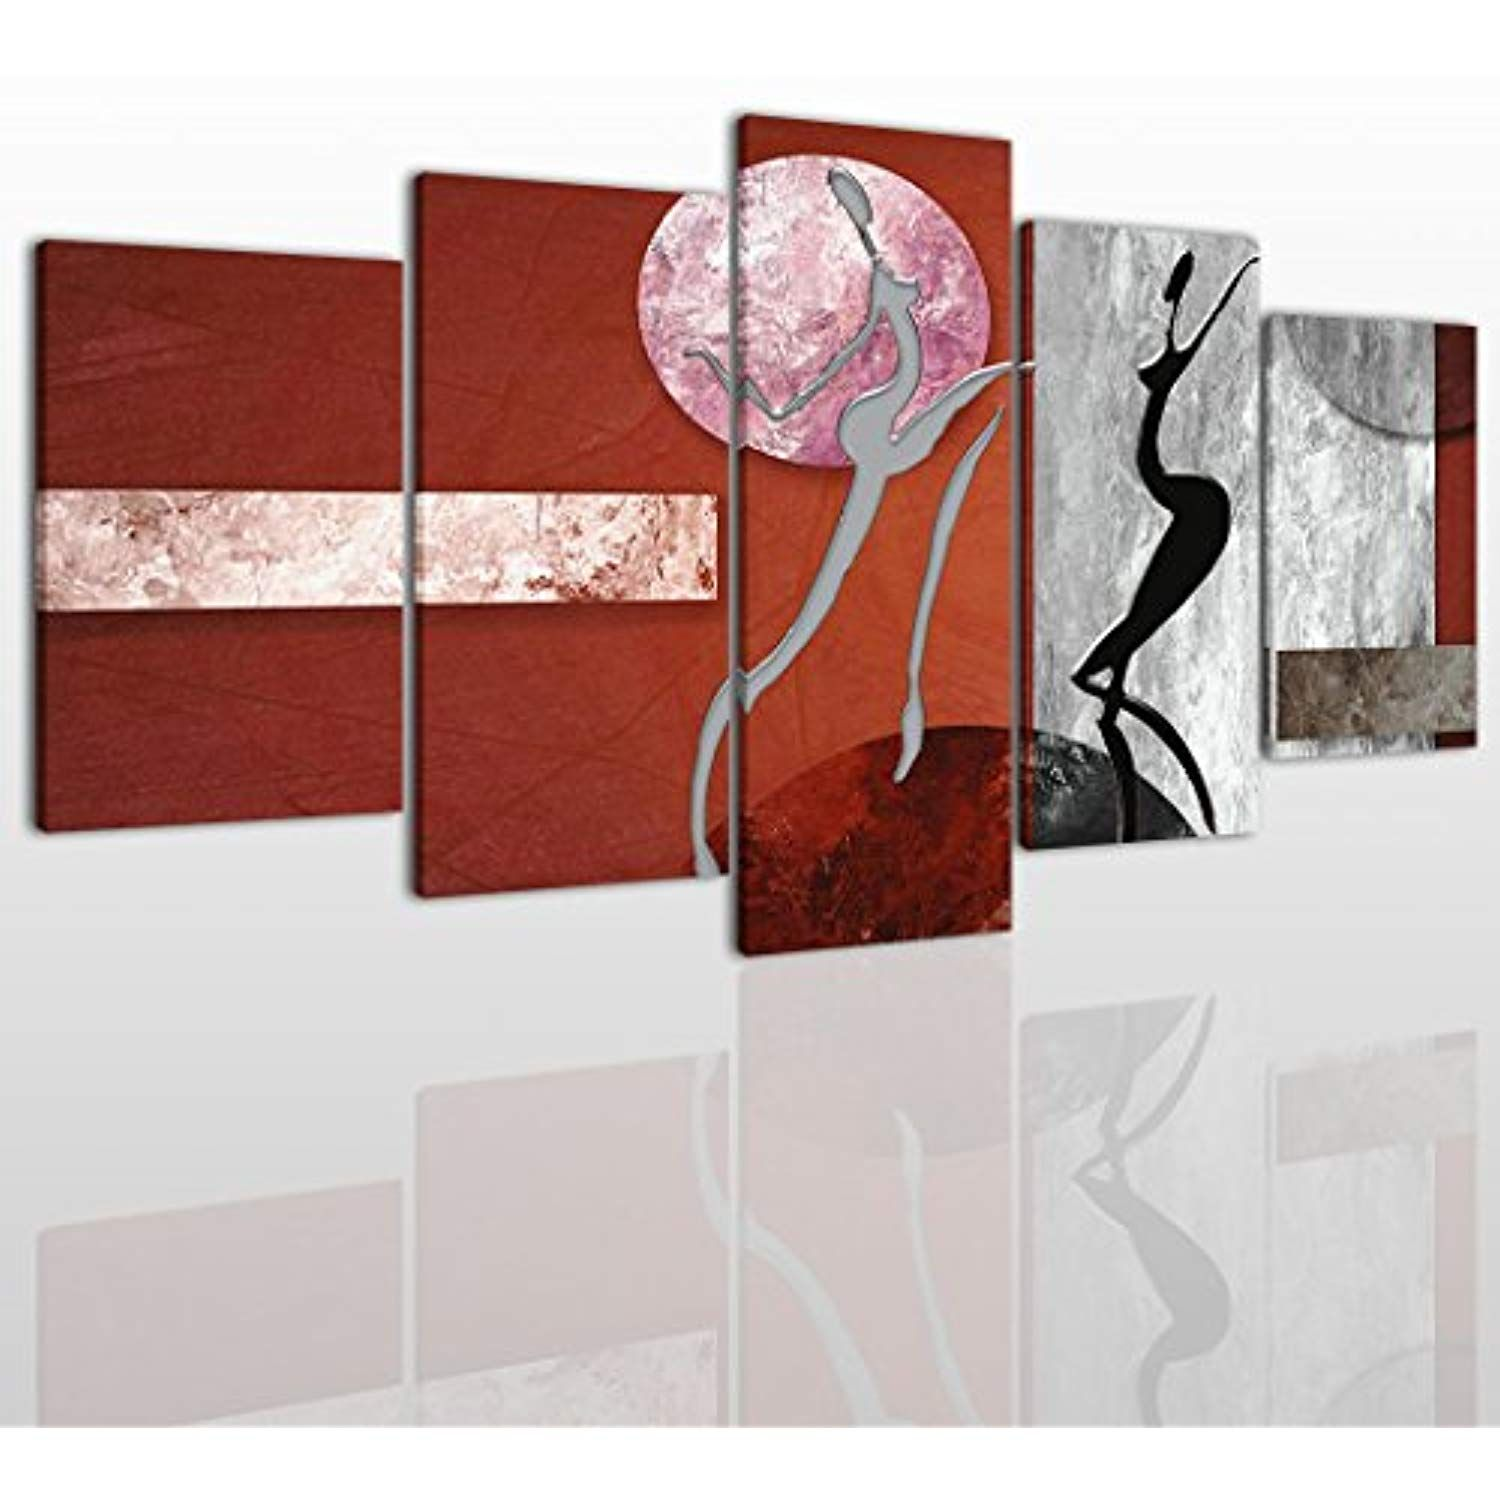 Abstract black white and red canvas wall art painting modern design